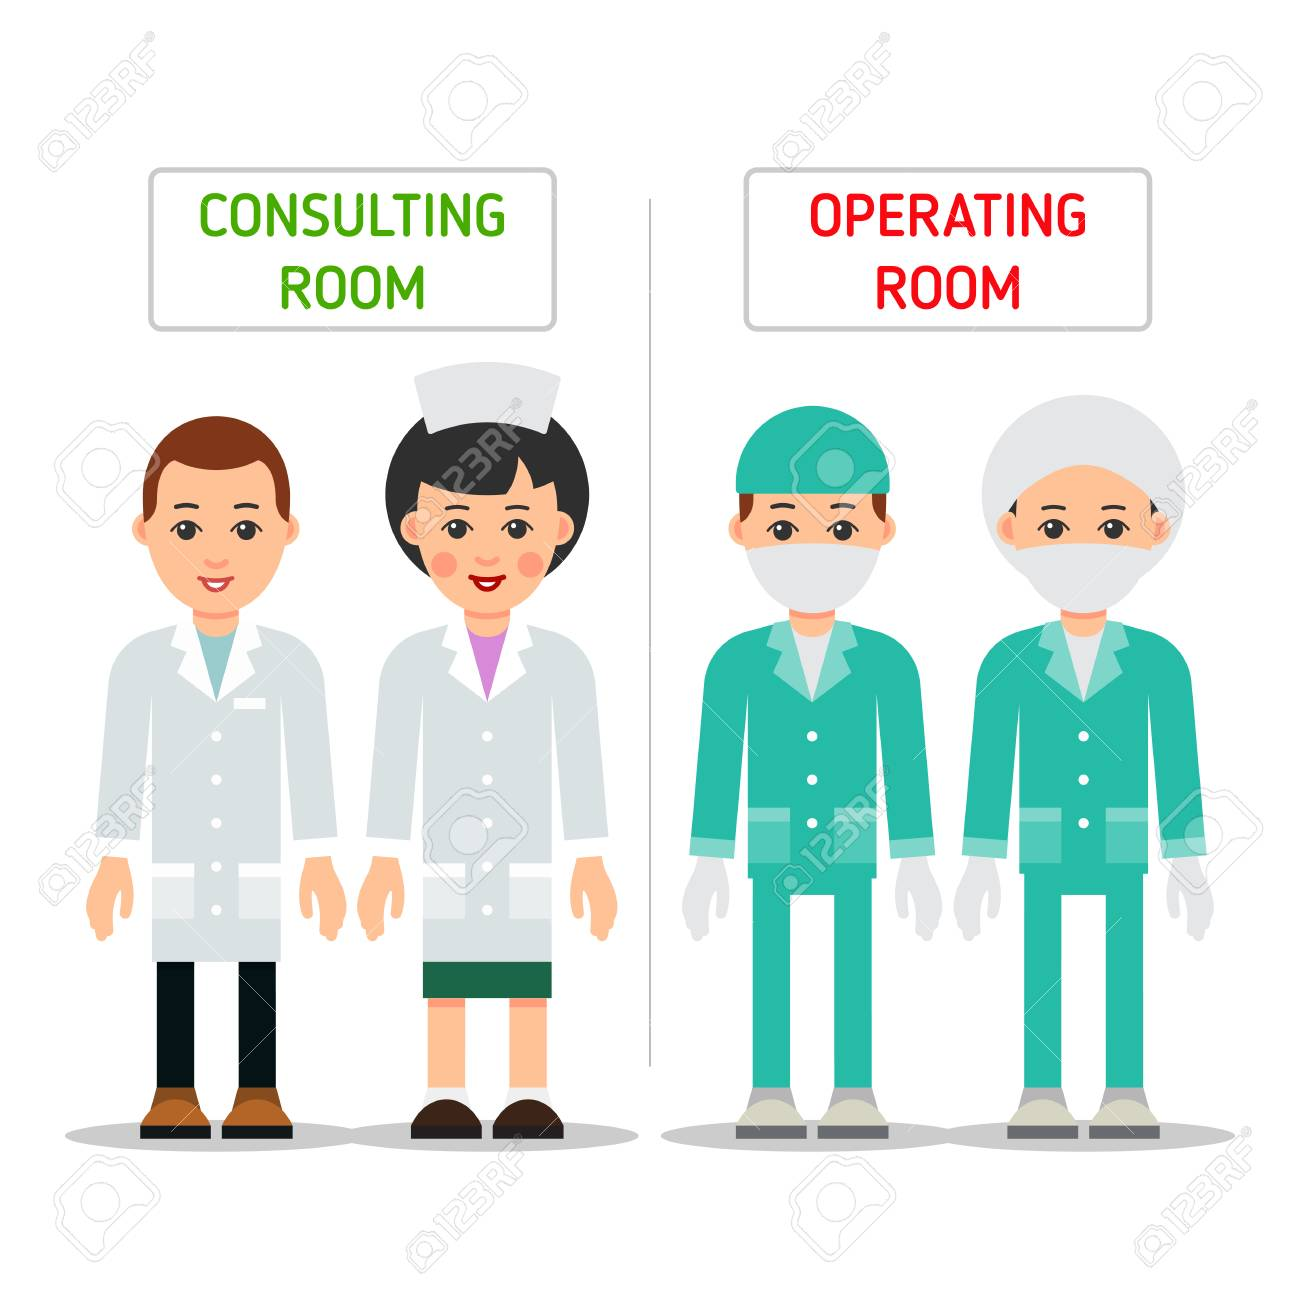 Doctors In Uniform For Consulting Room And Operating Room Design